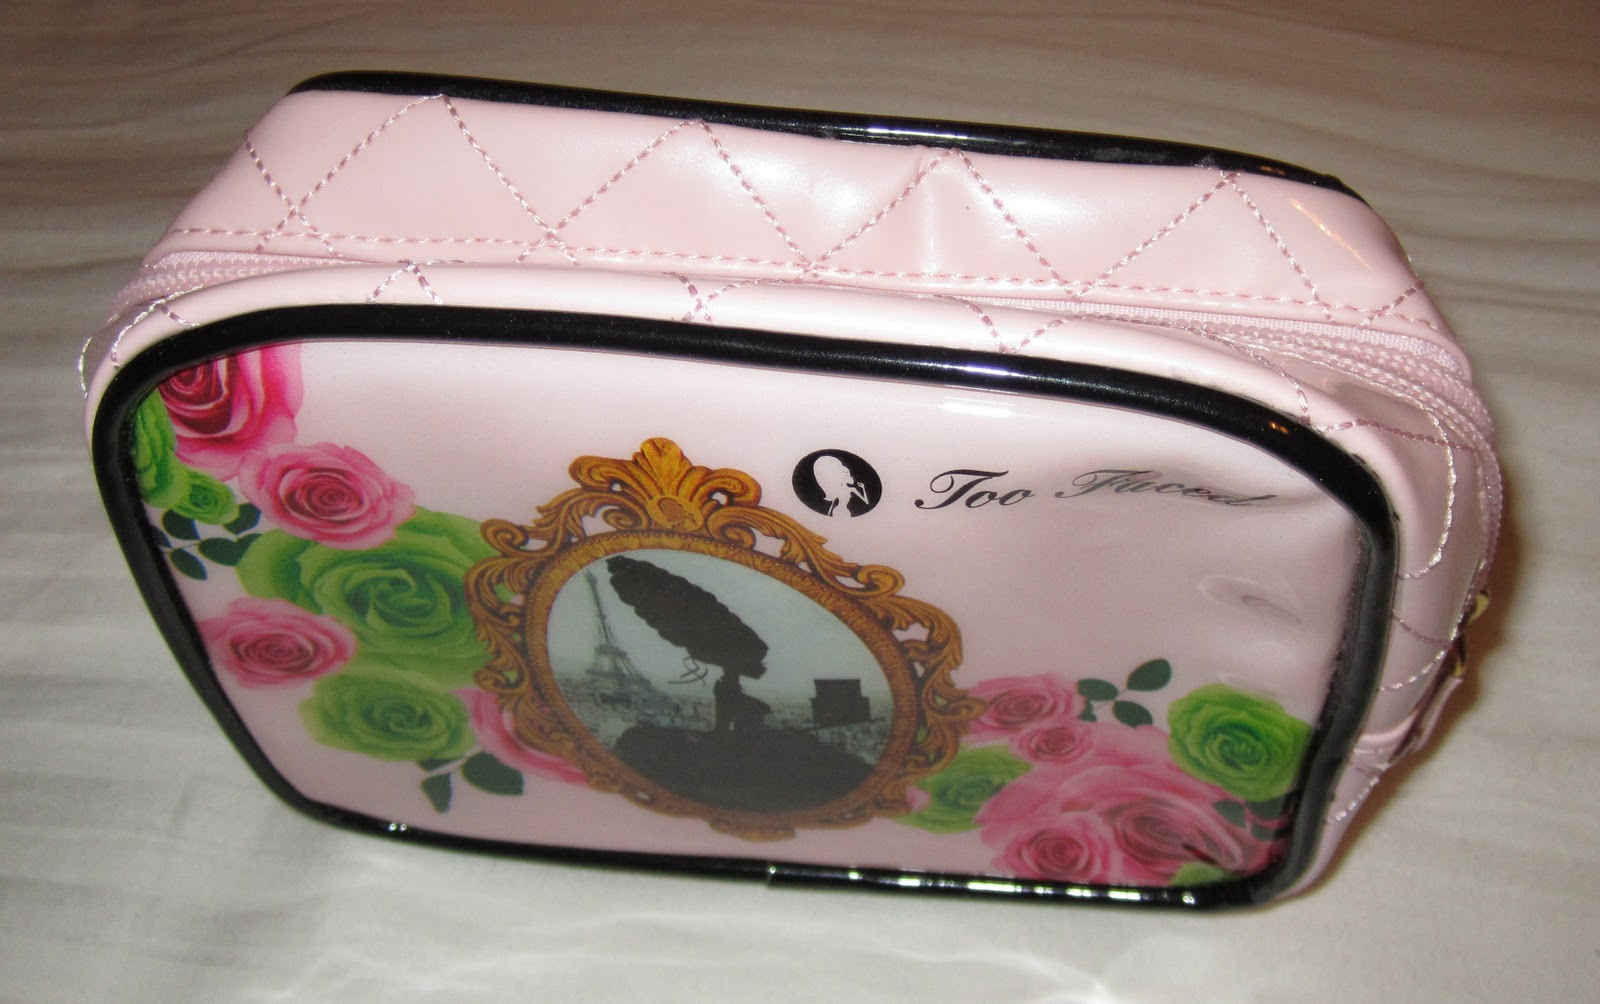 The Makeup Editor: Review: Too Faced Marie Antoinette cosmetic bag